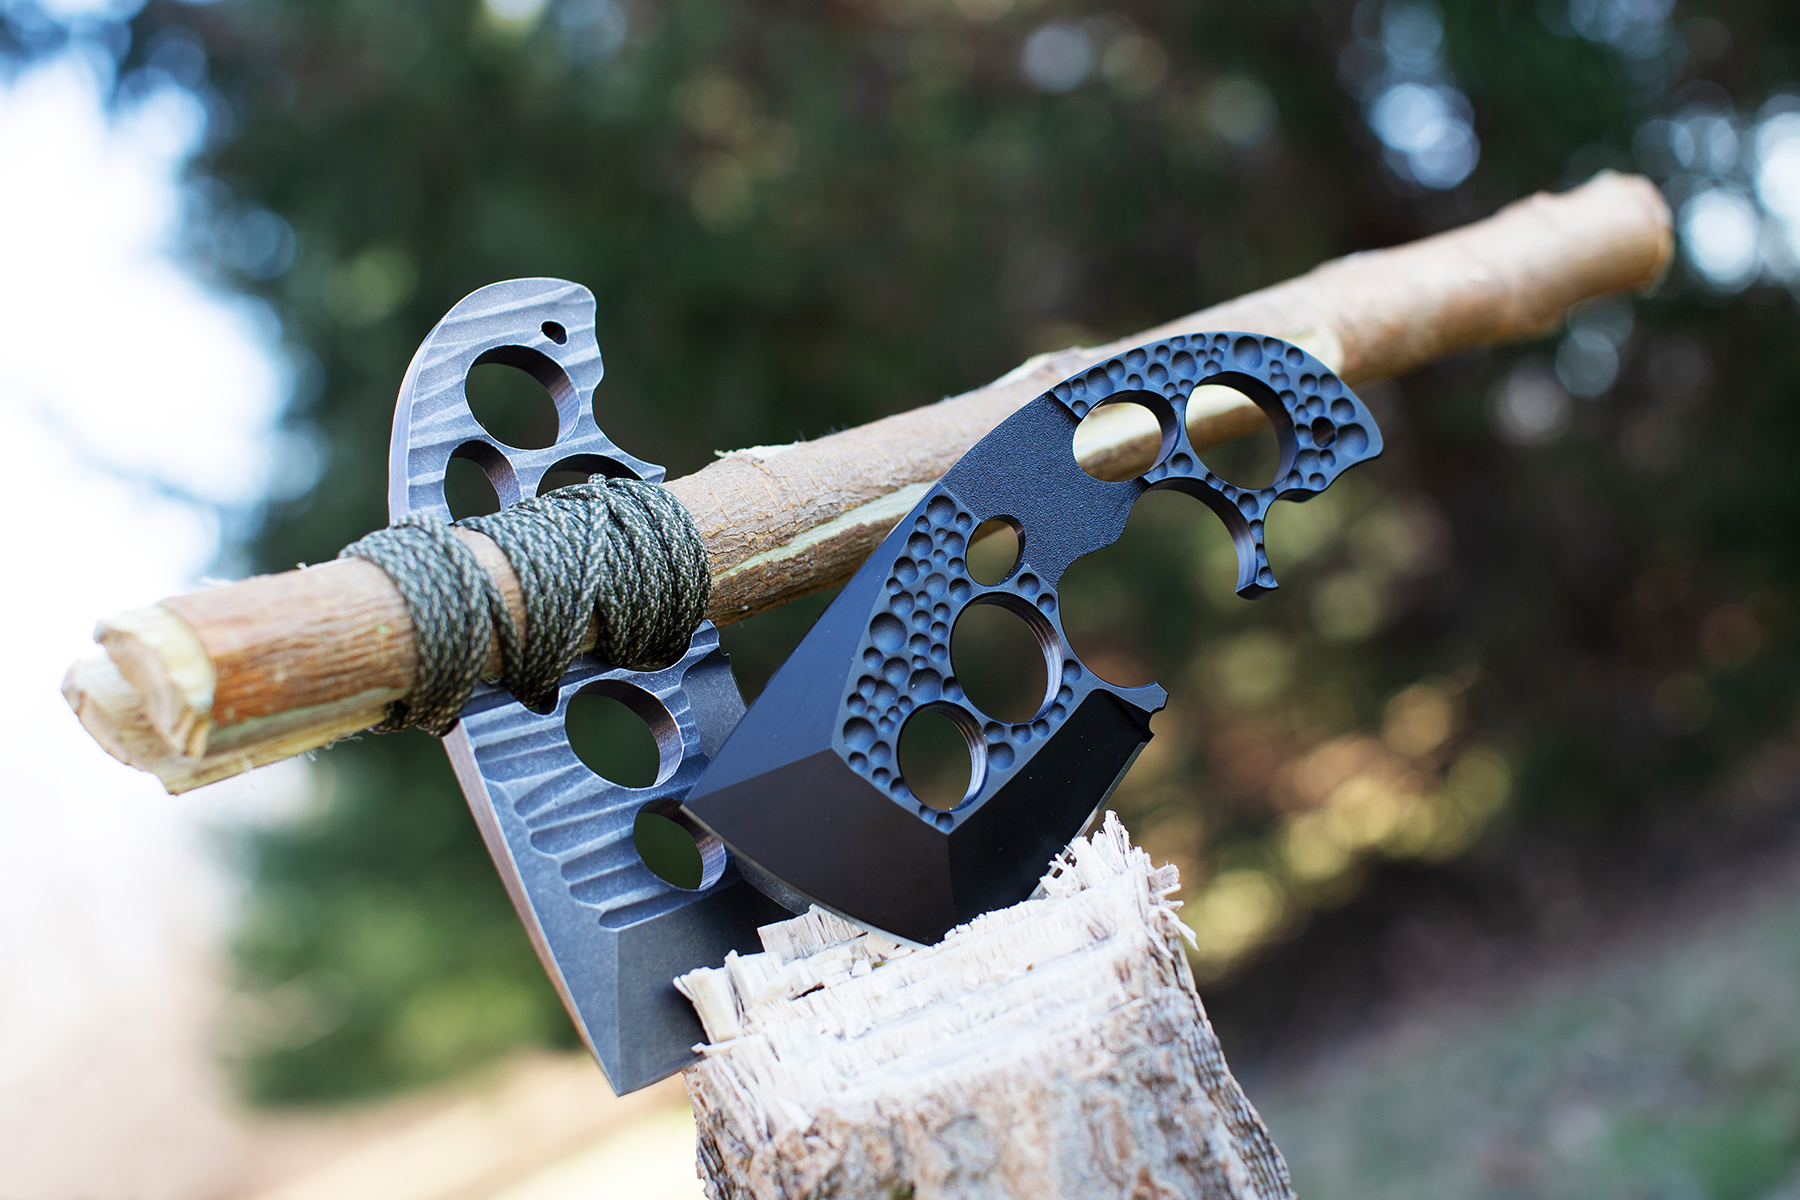 Like so much outdoor gear, the Axxis tool was designed as a way of allowing adventurers to keep down the weight of their packs as they head into the wilderness